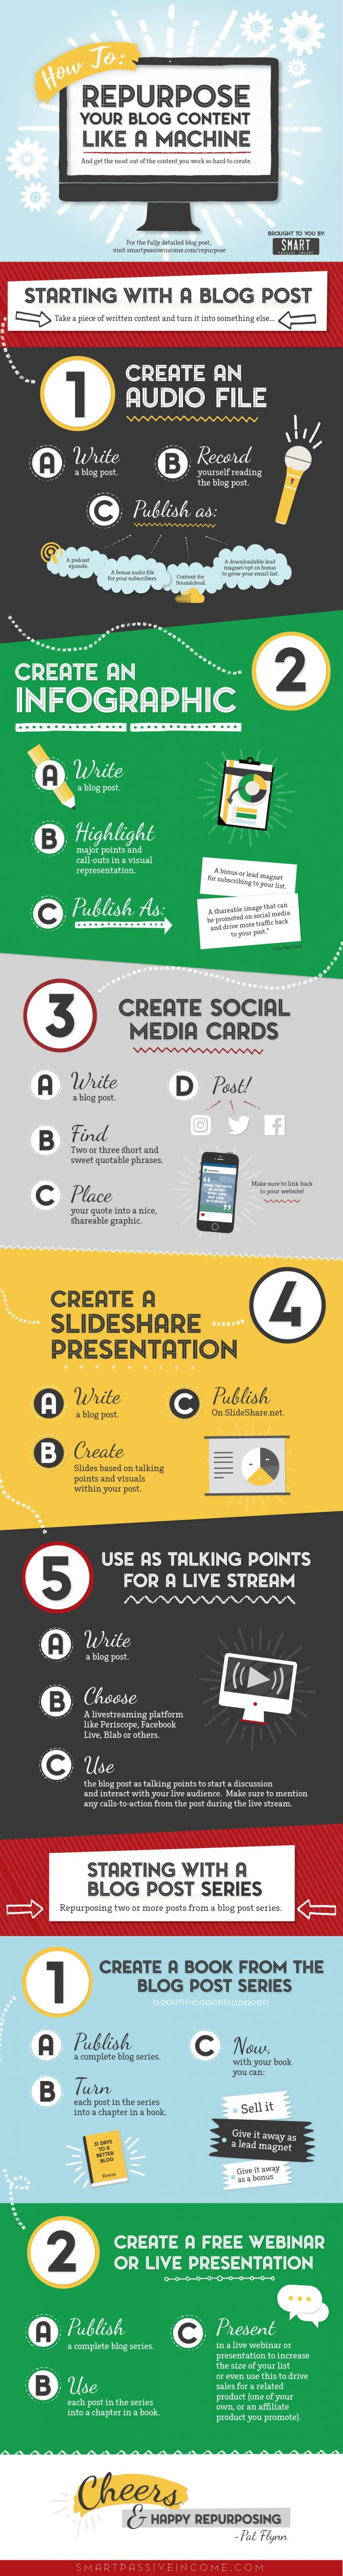 How to Repurpose Blog Content Like a Machine Infographic blogged at marketingsparkler.com